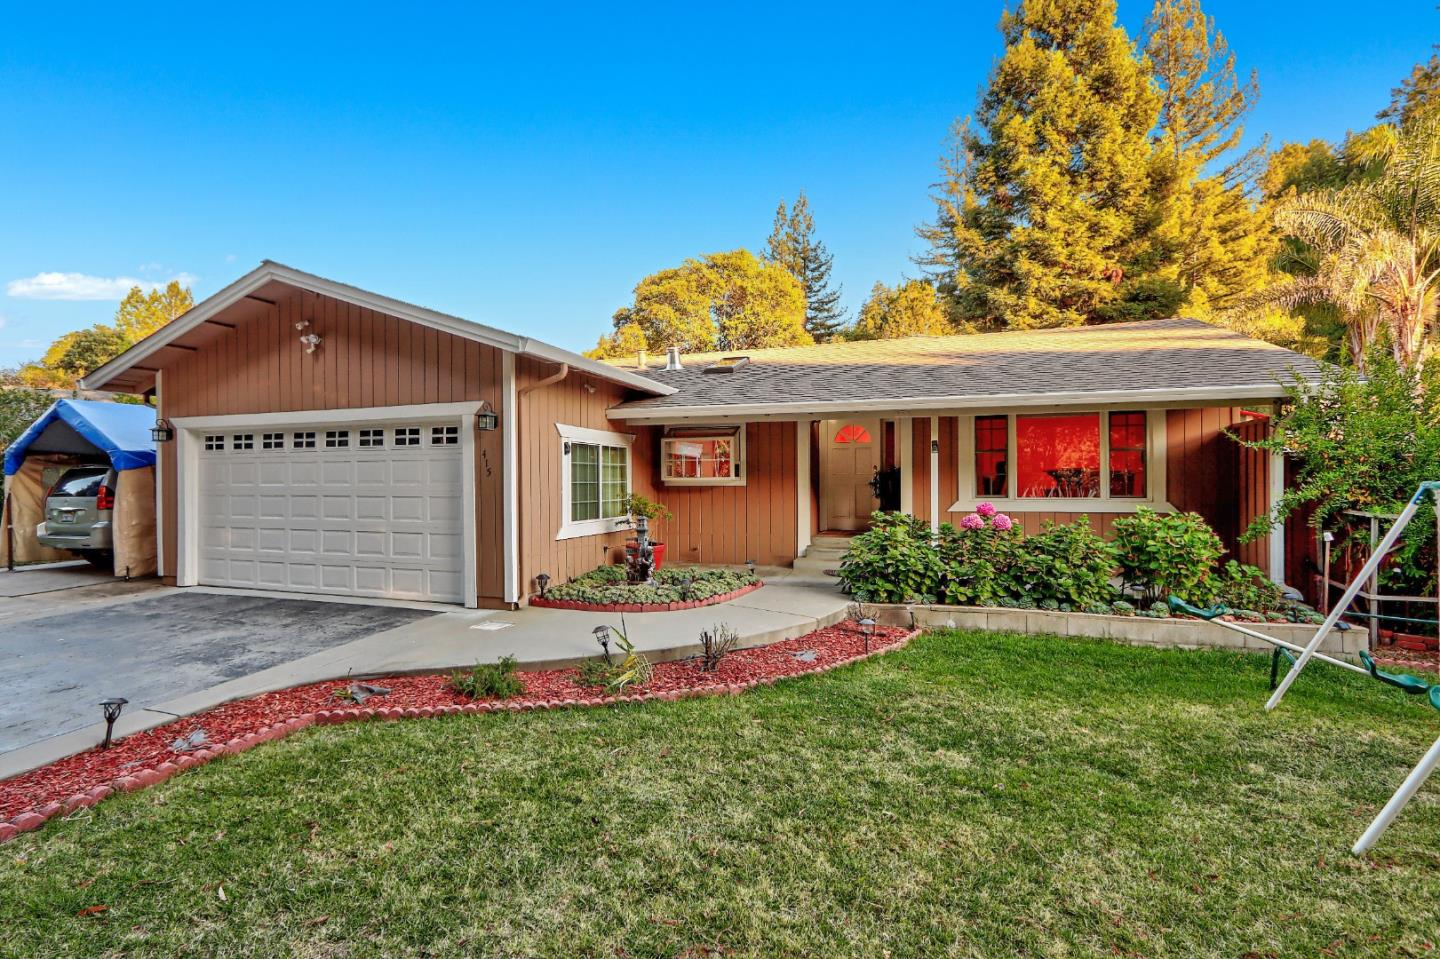 Beautiful home in Scotts Valley, remodeled and move in ready. A flat and Sunny lot has mature fruit trees, a green lawn, large veggie garden and multiple hard-scaped patios. Plenty of parking thanks to the 2 car garage and circle driveway. Enter into a large, well laid out home perfect for entertaining. To the right is a parlor with a built in bar, that leads out onto the back patio. To the left, a warm kitchen welcomes you into the heart of the home. Custom hickory cabinets and granite counters complement the high end stainless steel appliances, including a meile espresso machine. Hardwood floors throughout bring warmth to the living space. Kitchen opens into a spacious dining area. Large living room has cozy fireplace, high ceilings and opens onto second patio. Large main suit retreat has vaulted ceilings w/ exposed wood beams, a cozy sitting area w/ wood stove and an ensuite bathroom. 2 more bedrooms are large and cheerful, with access into the back yard. Great commute location!